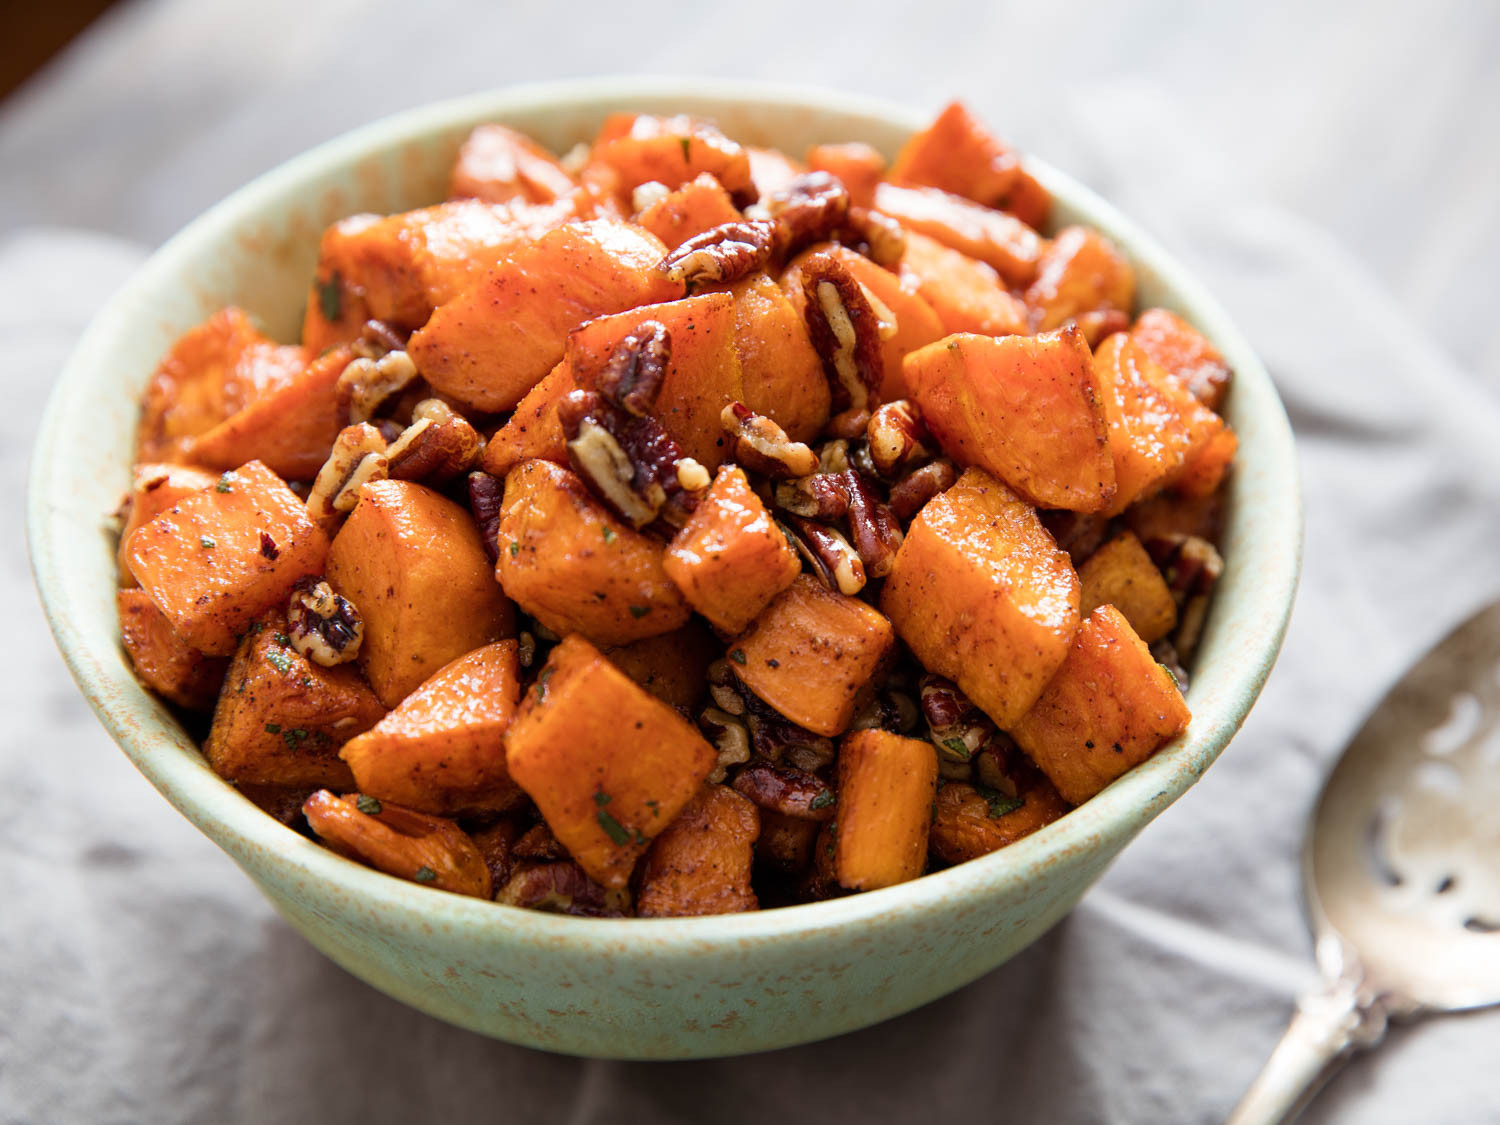 Sweet Potatoes For Thanksgiving  14 Sweet Potato Recipes for Thanksgiving That Are Just